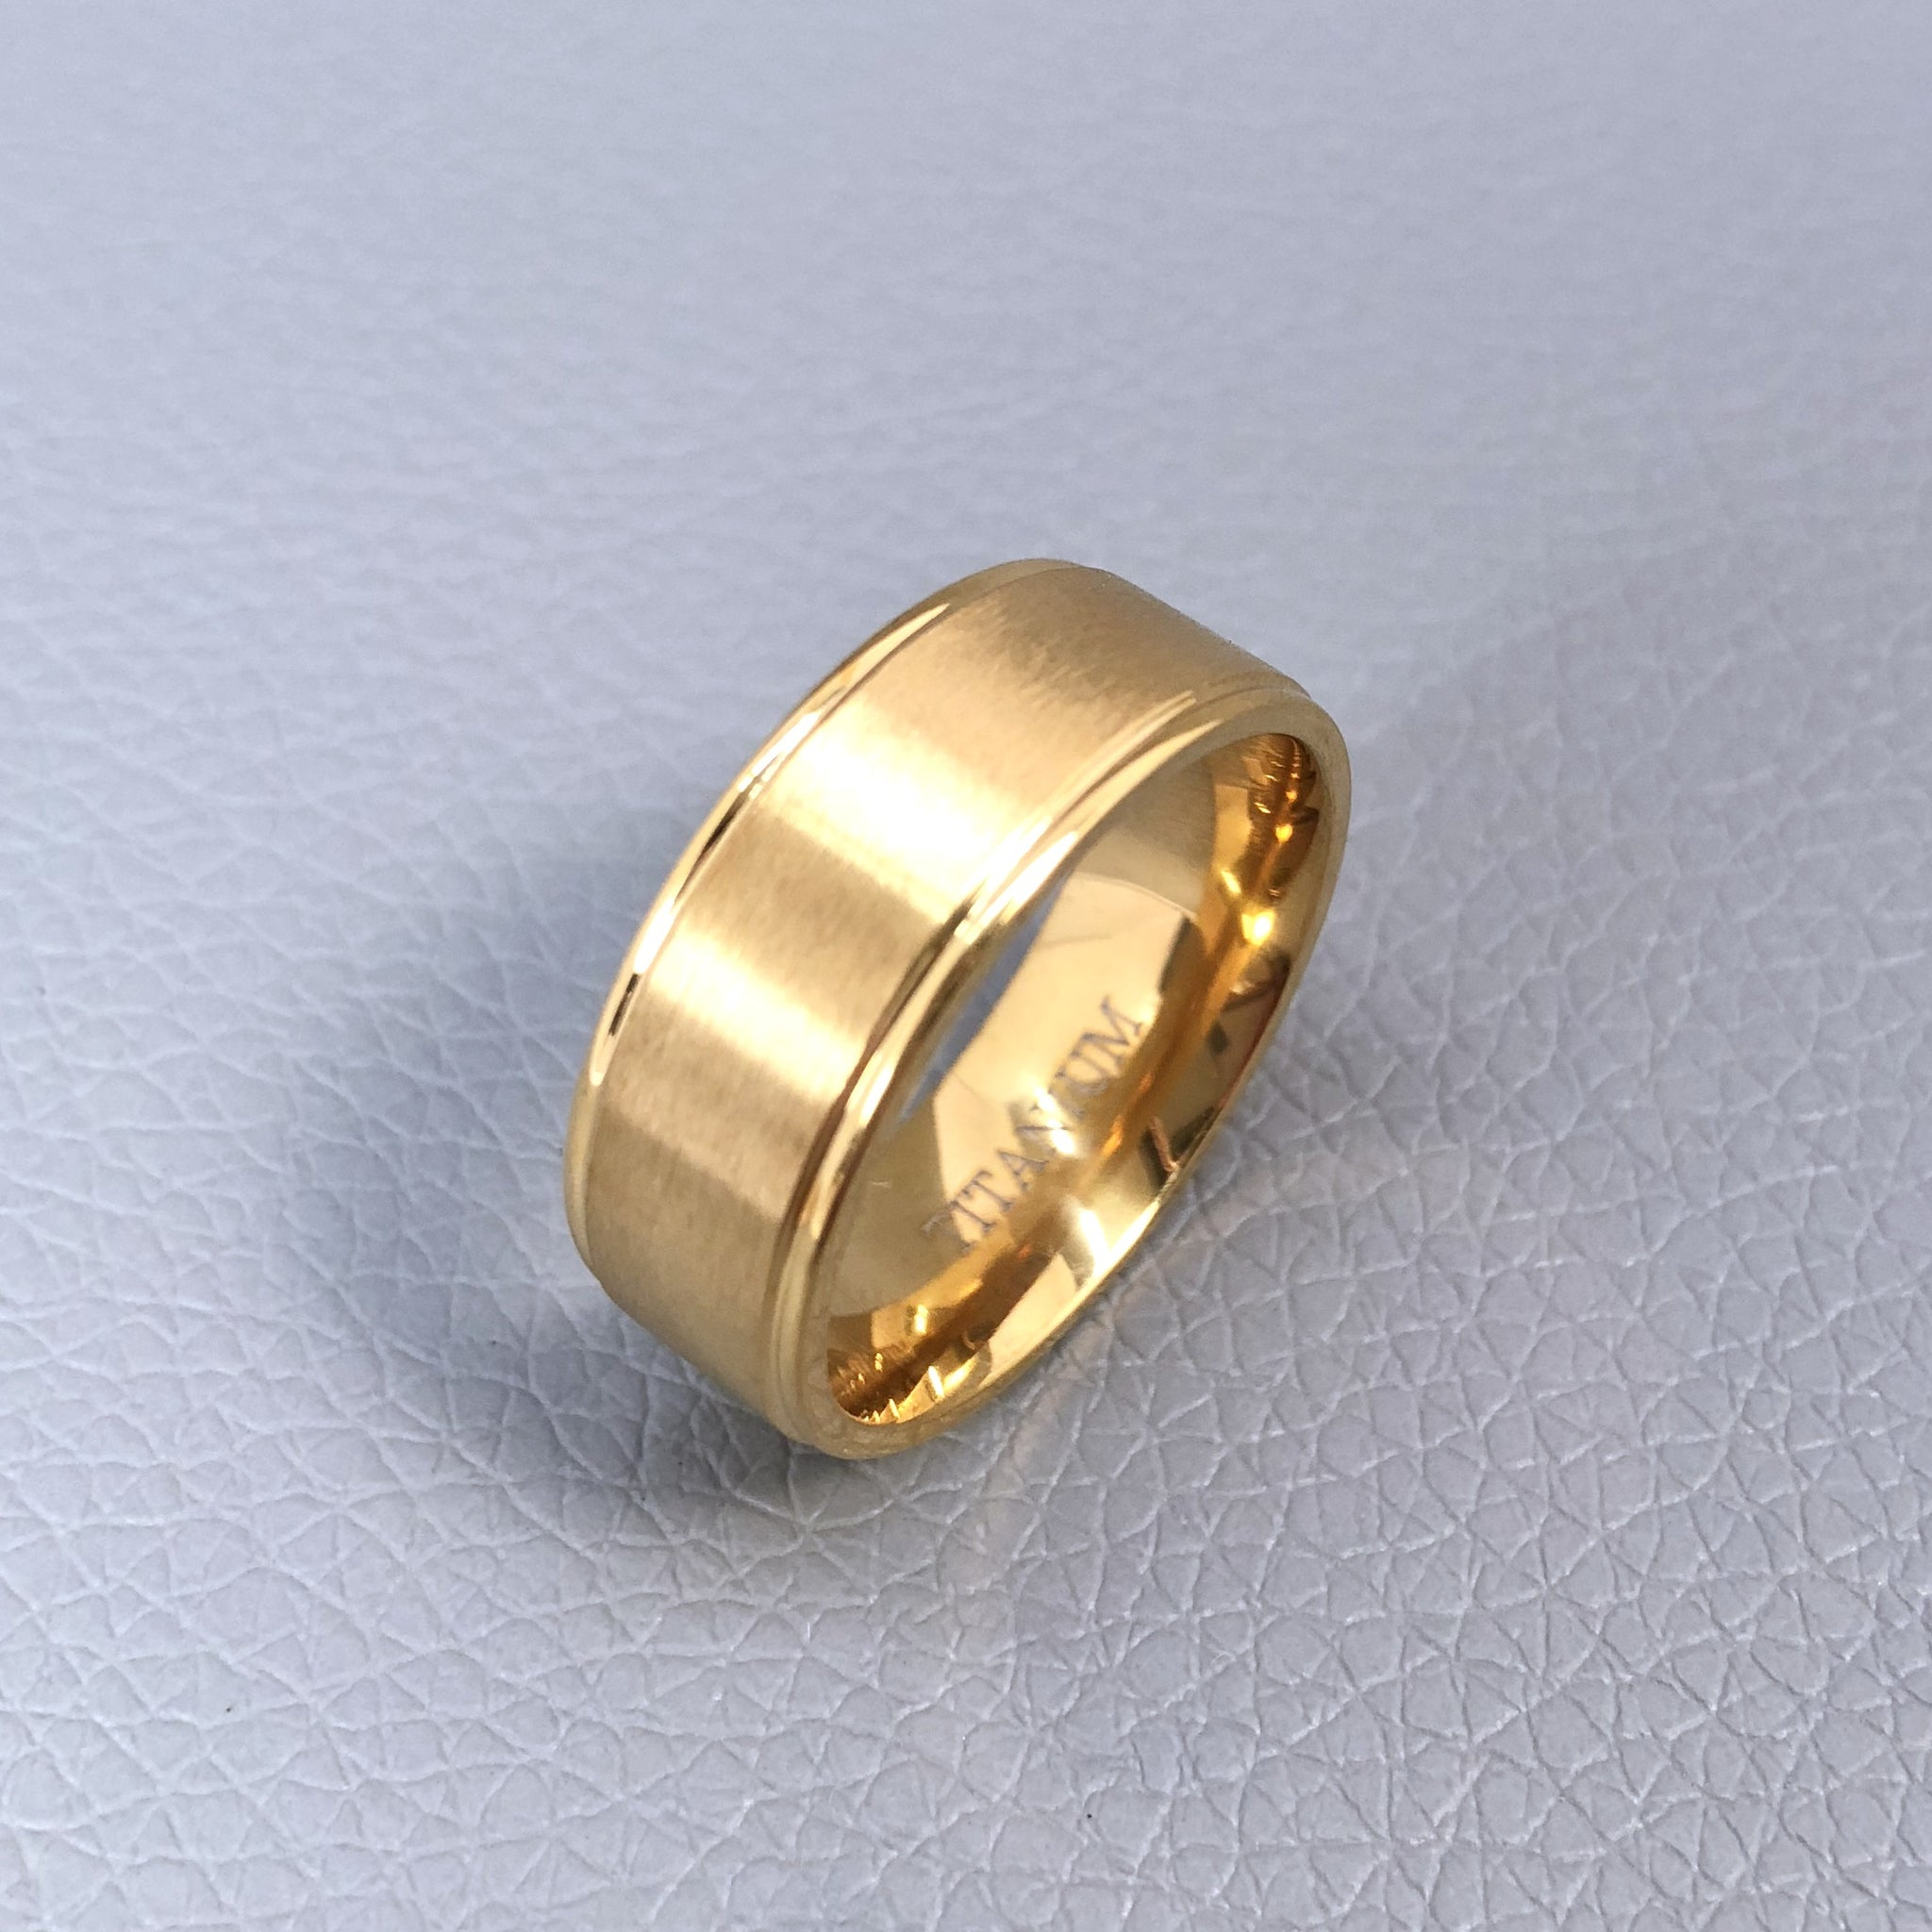 wedding diamonds engagement s gold mens unique concierge rings band product men custom yellow brushed